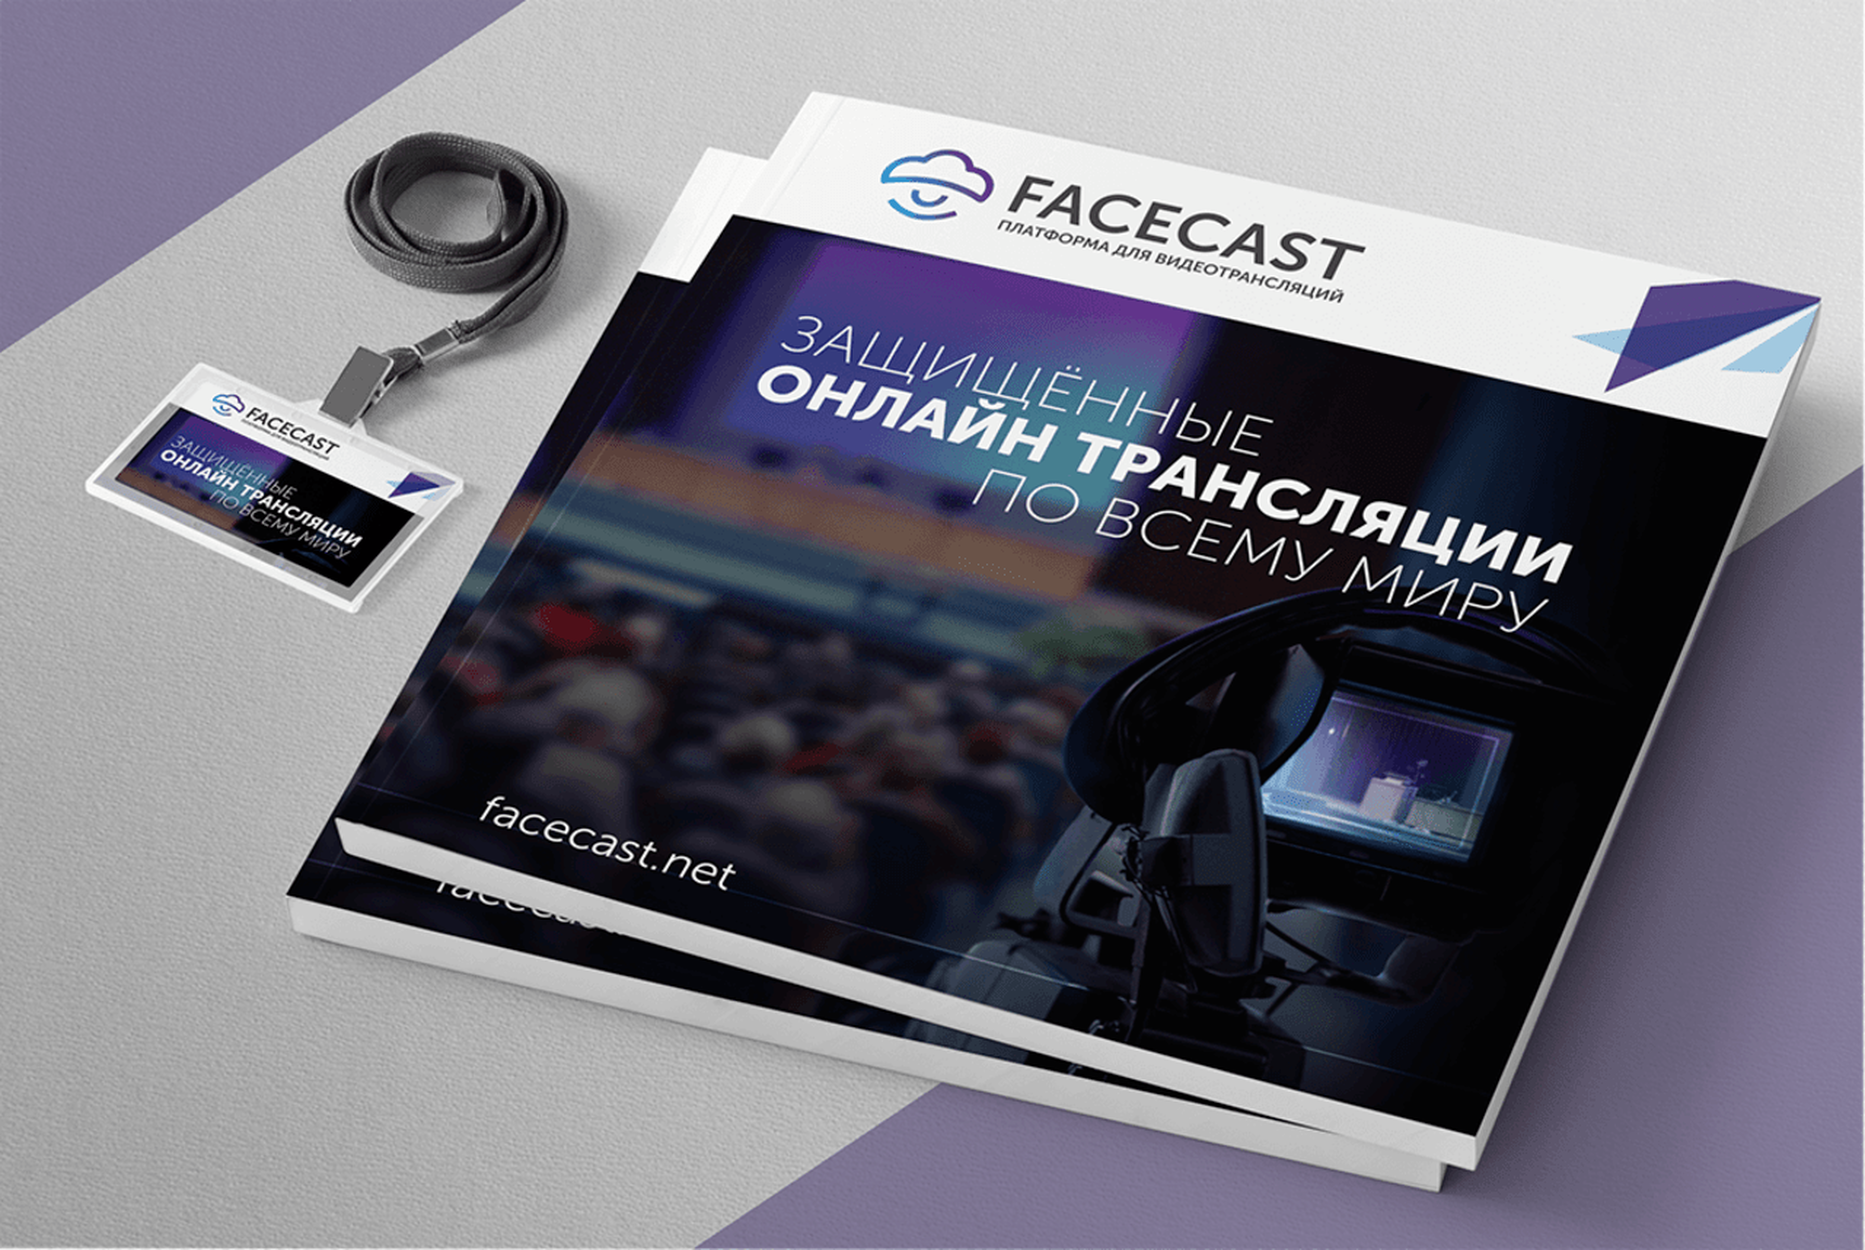 Case: Marketing Kit for Facecast Company — Rubarb - Image - 1